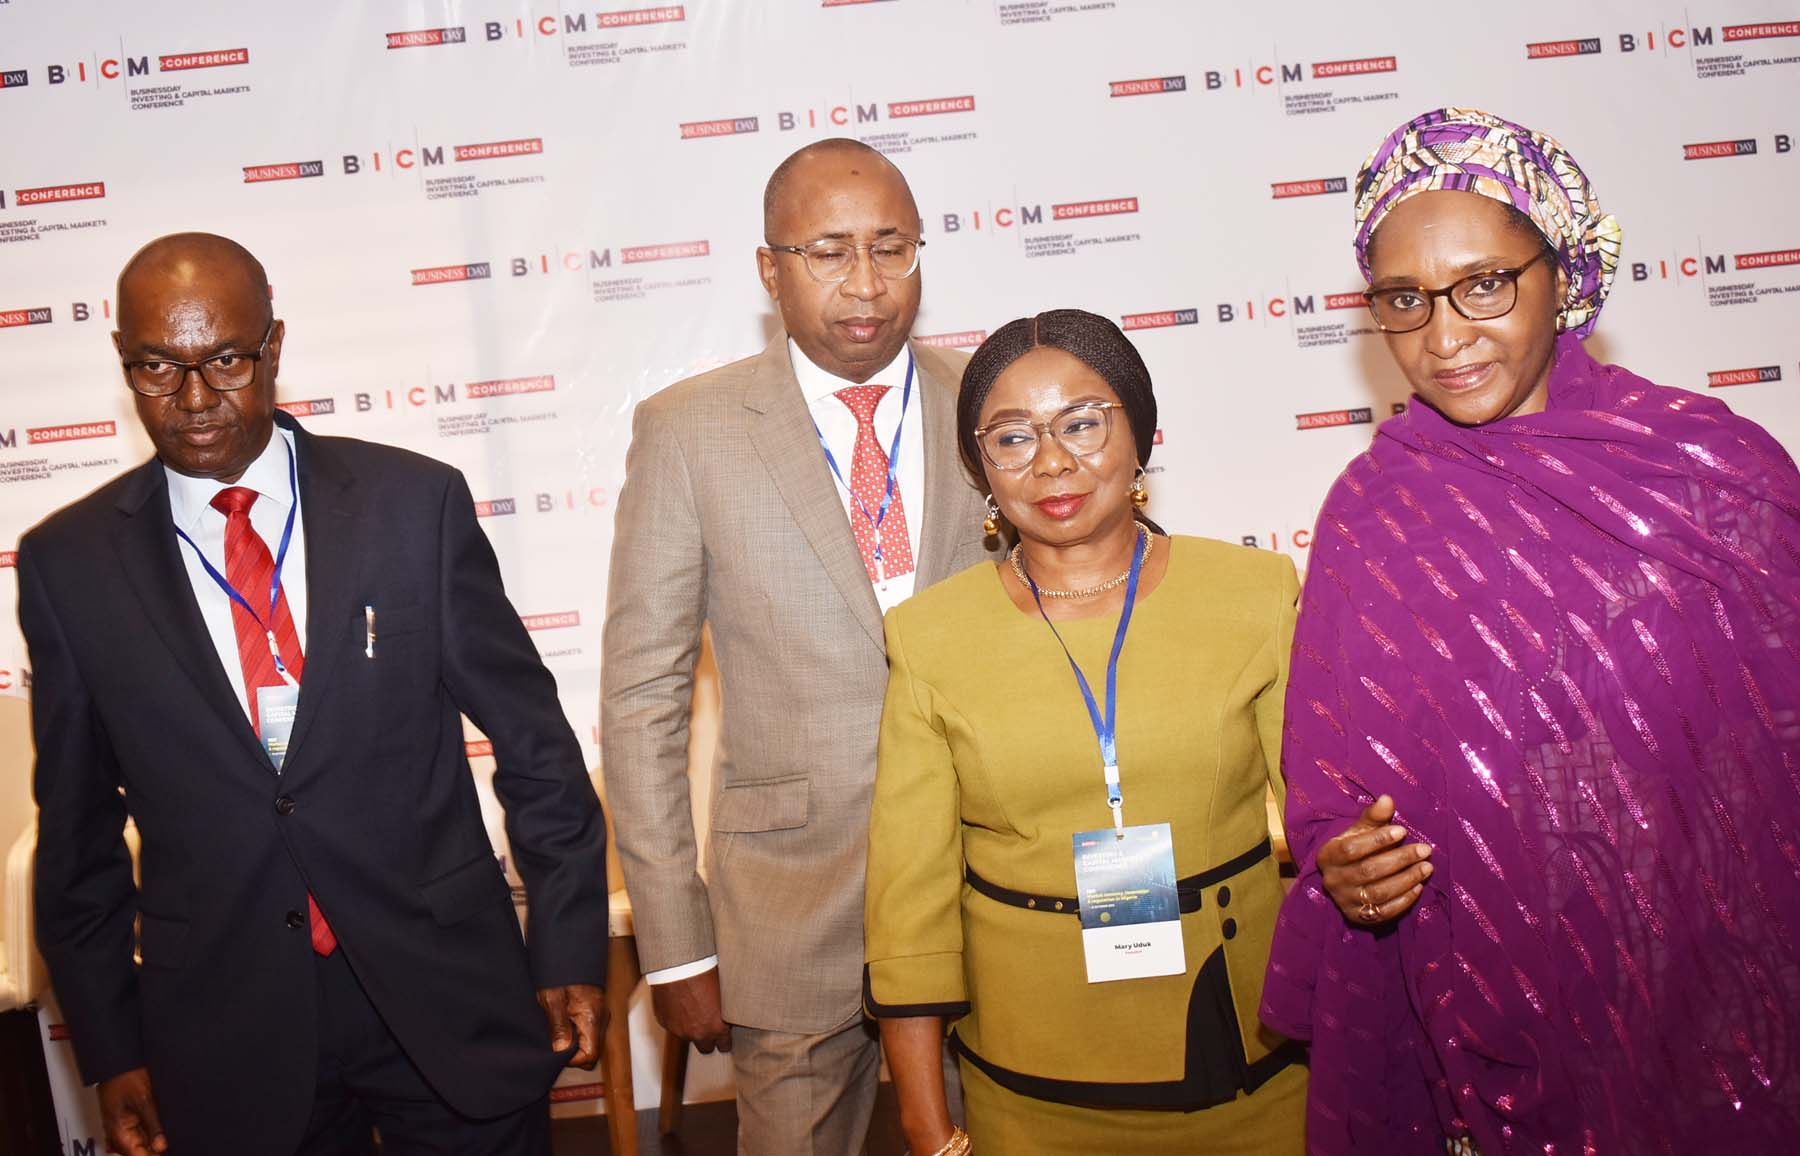 L-R,  Head Strategy, AMCON Mr Muhammad Suleiman,  Managing Director, Central Securities Clearing System Mr Jalo Waziri, Acting Director General, Securities and Exchange Commission  Ms Mary Uduk and Minister of Finance Hajia Zainab Ahmed during the Investing and Capital Markets Conference in Abuja, Thursday